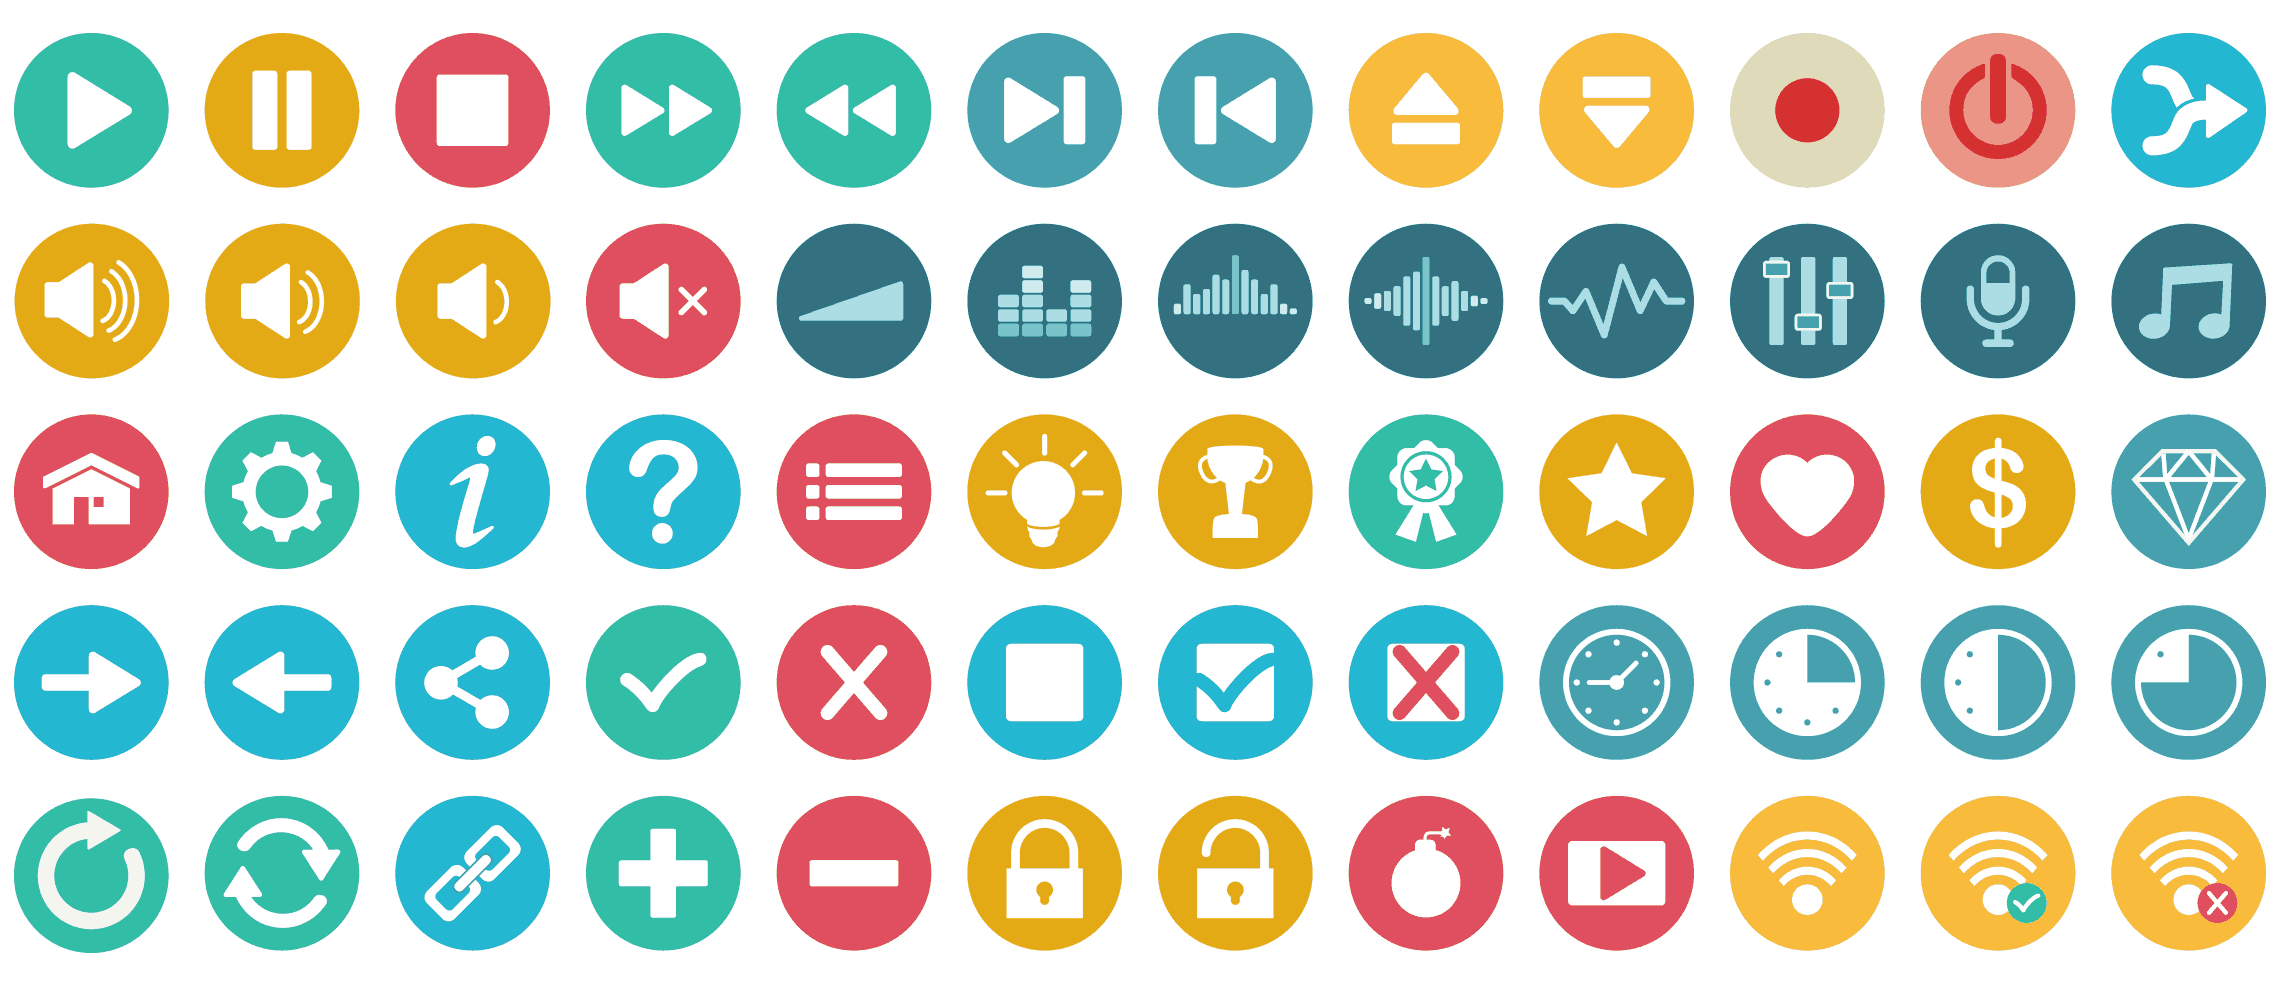 2500 Flat Icons Vector Set Royalty Free Flat Icon Icon All Icon